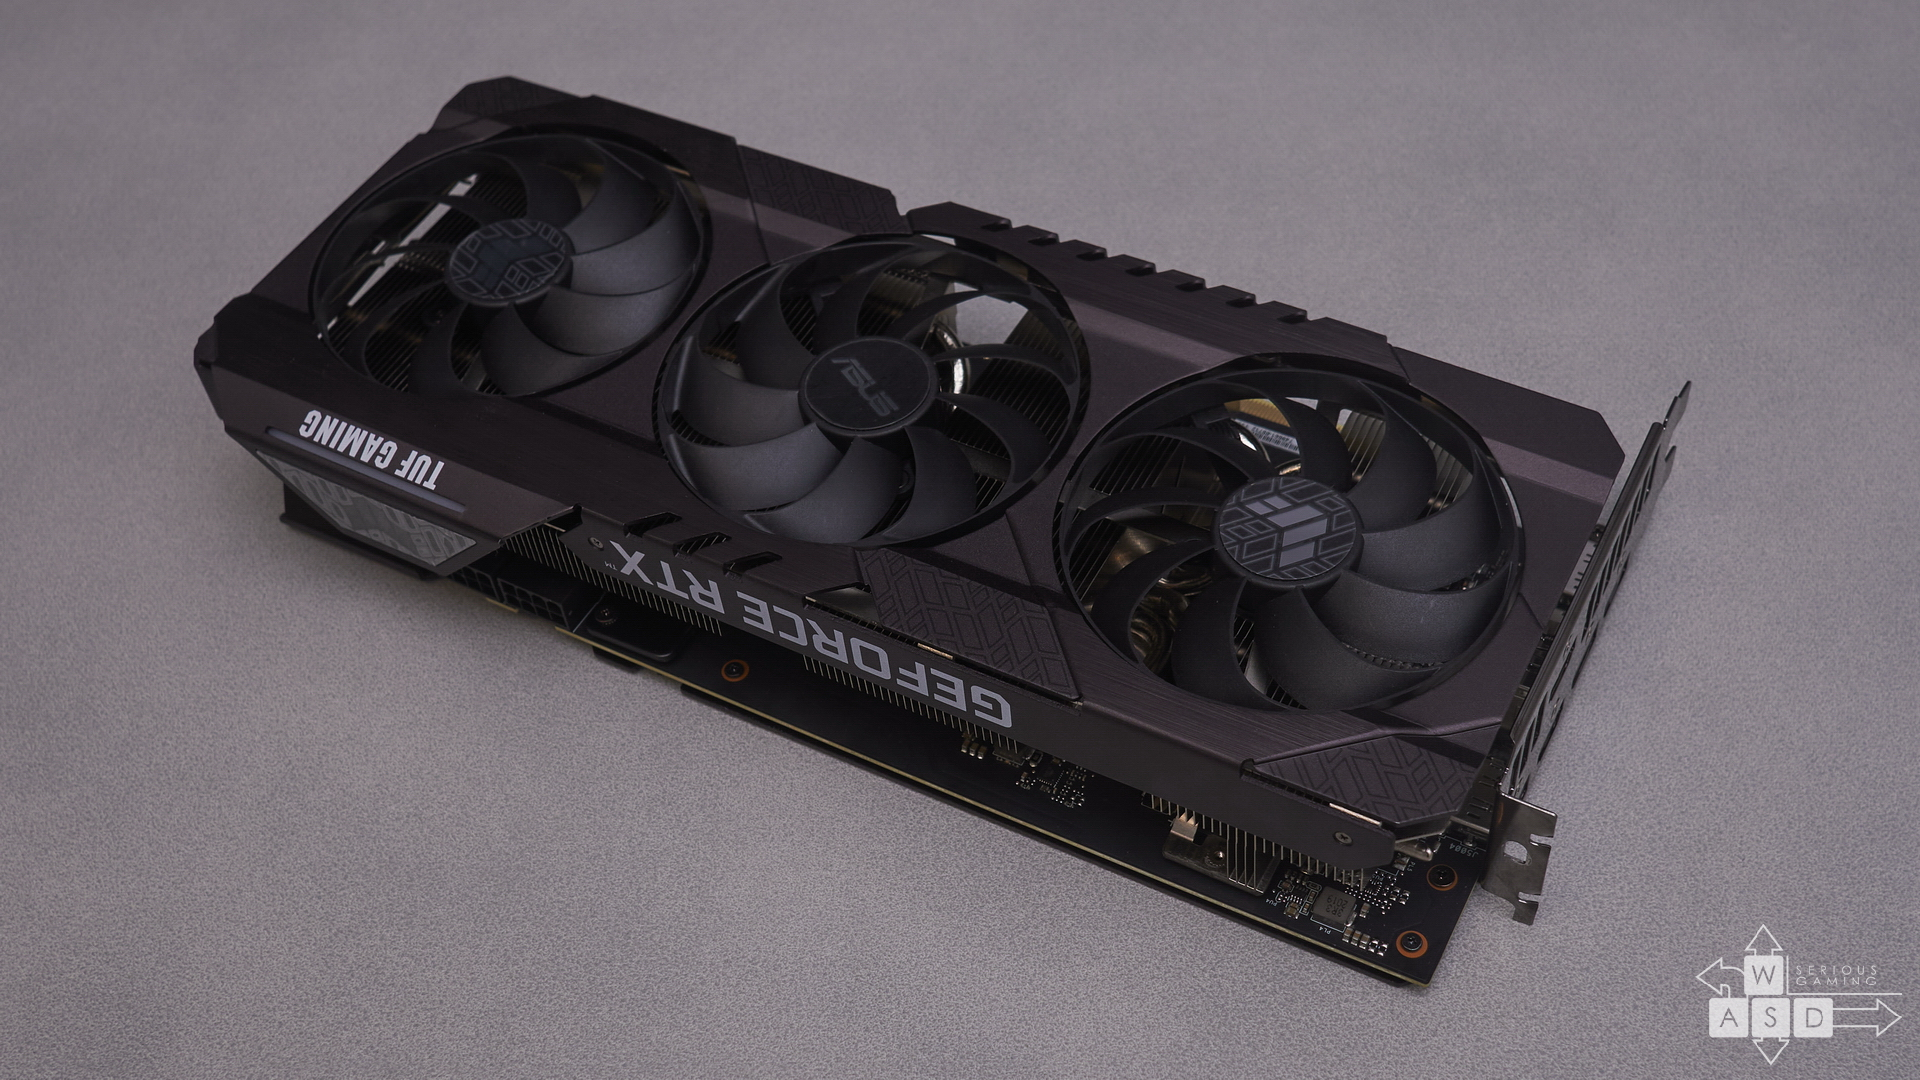 ASUS TUF RTX 3070 Gaming OC 8GB review | WASD